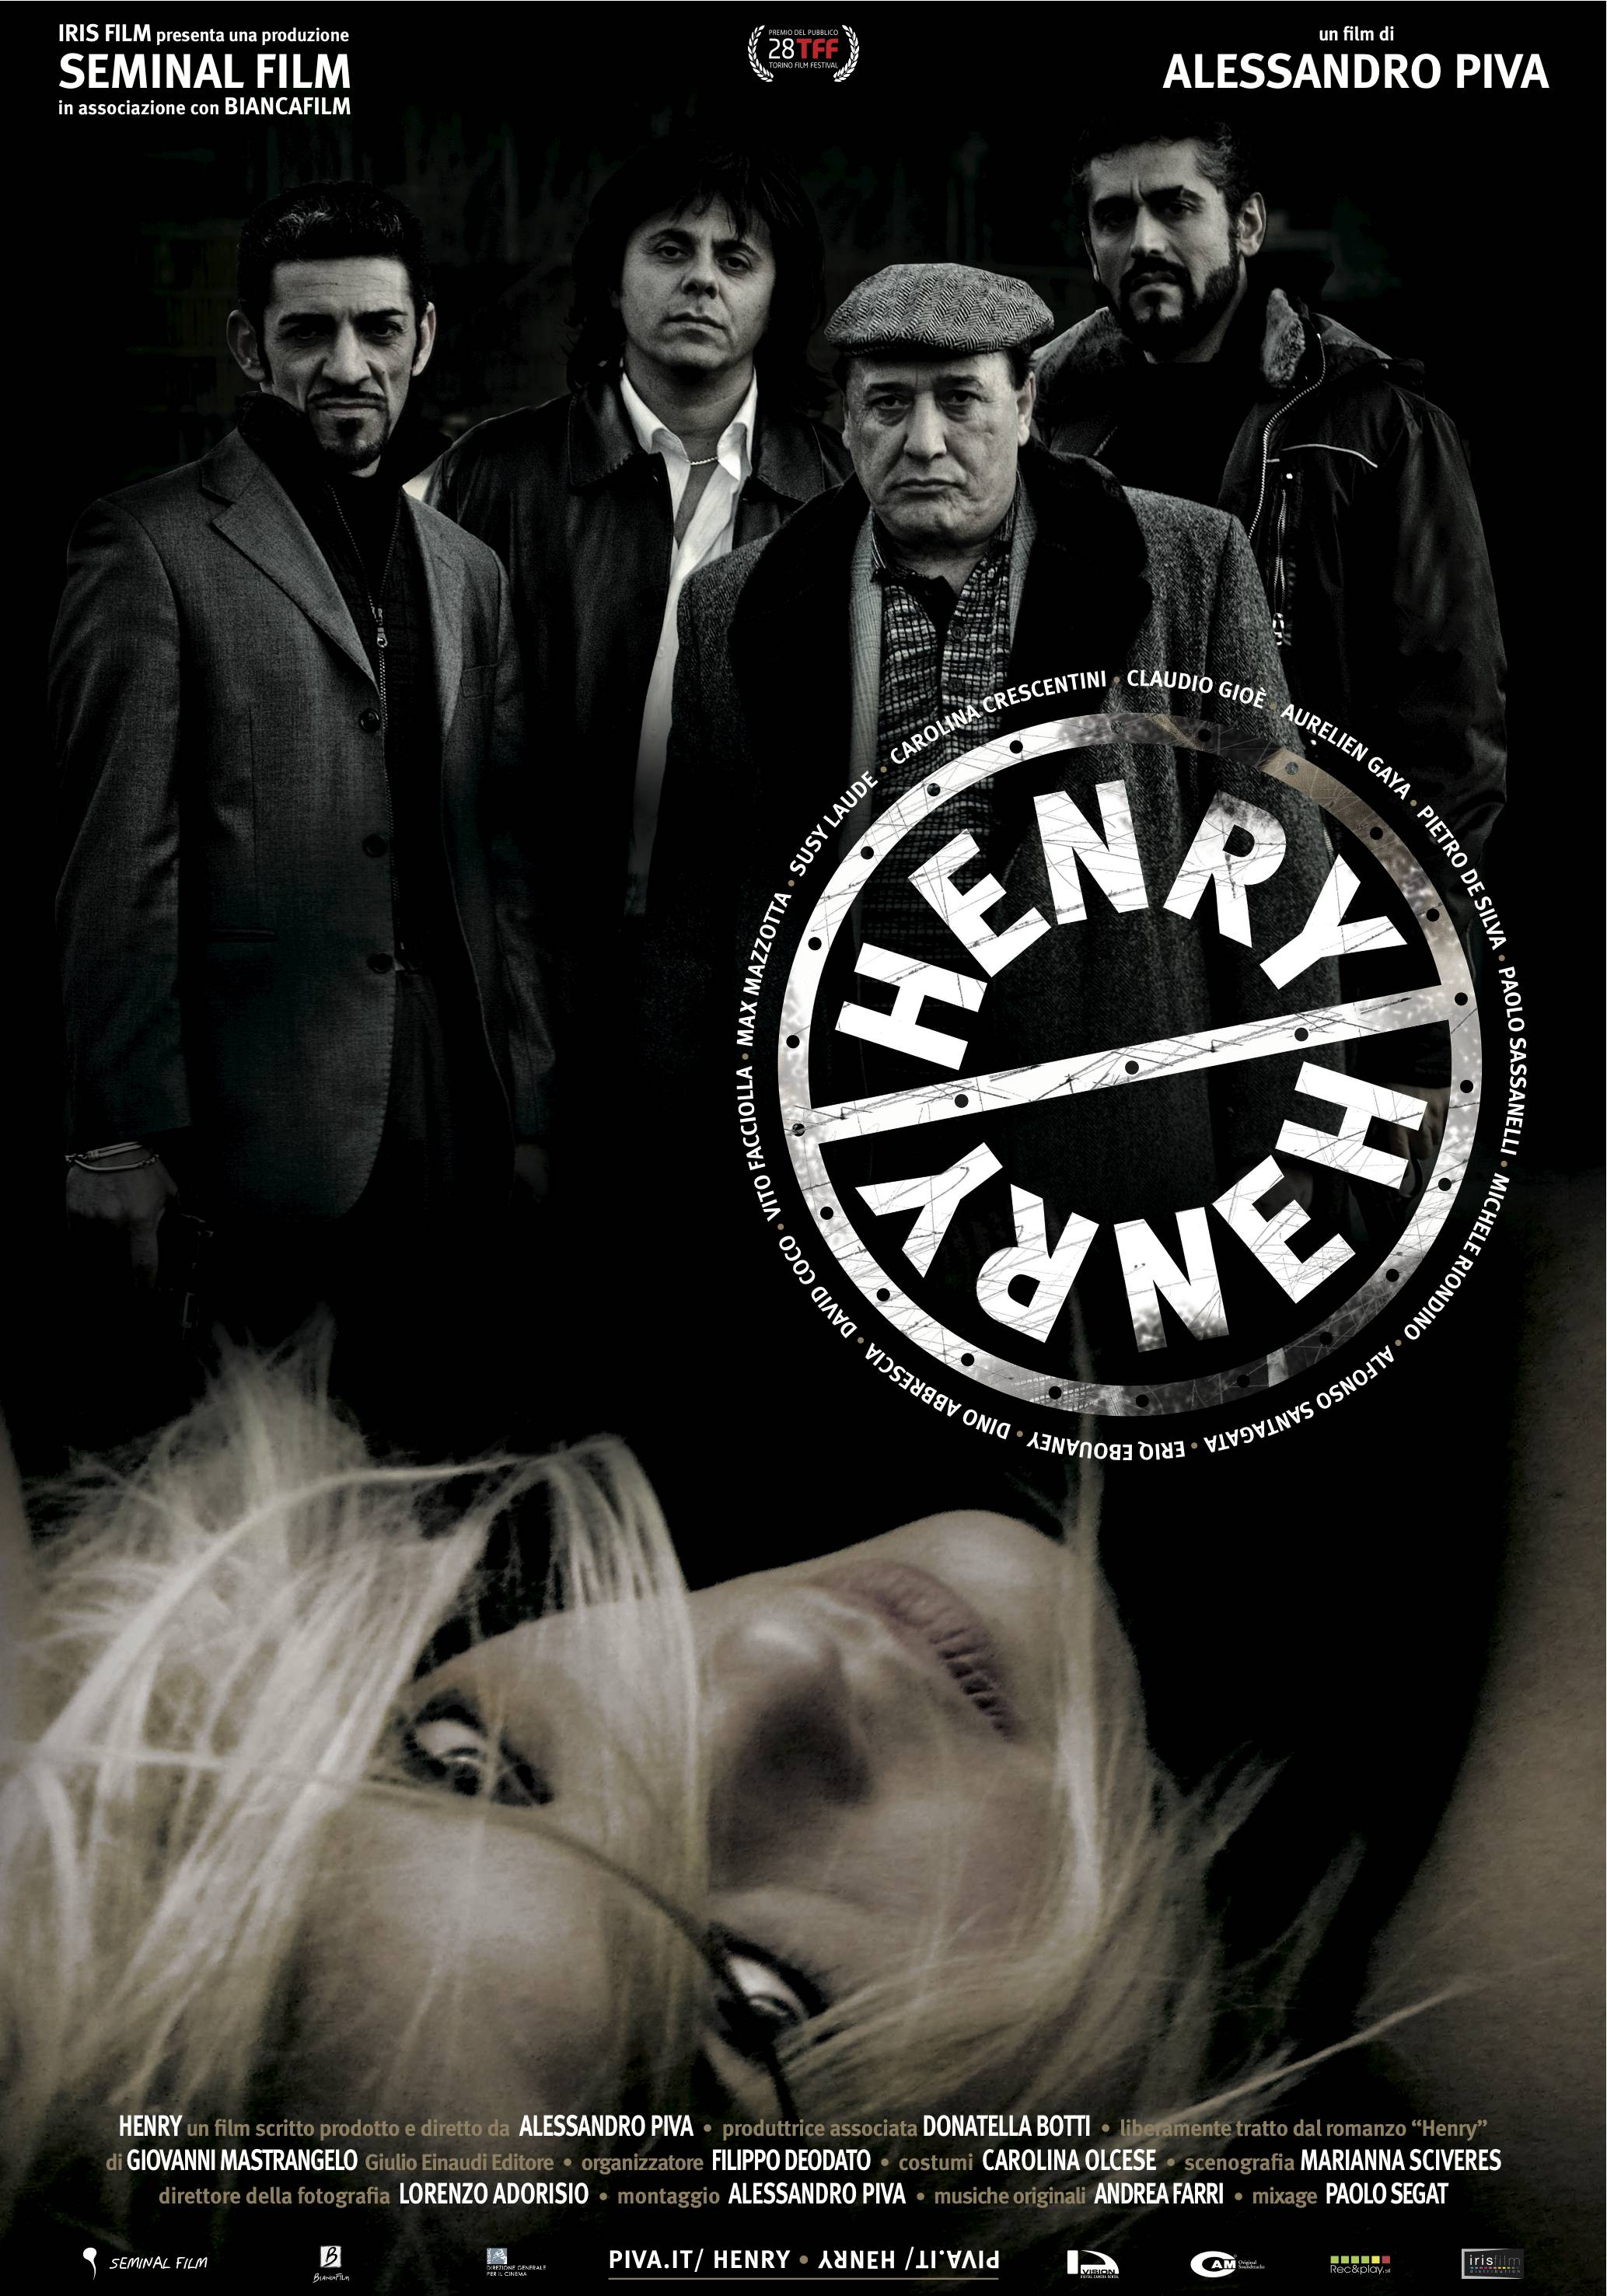 Dino Abbrescia, Alfonso Santagata, David Coco, Carolina Crescentini, and Vito Facciolla in Henry (2010)